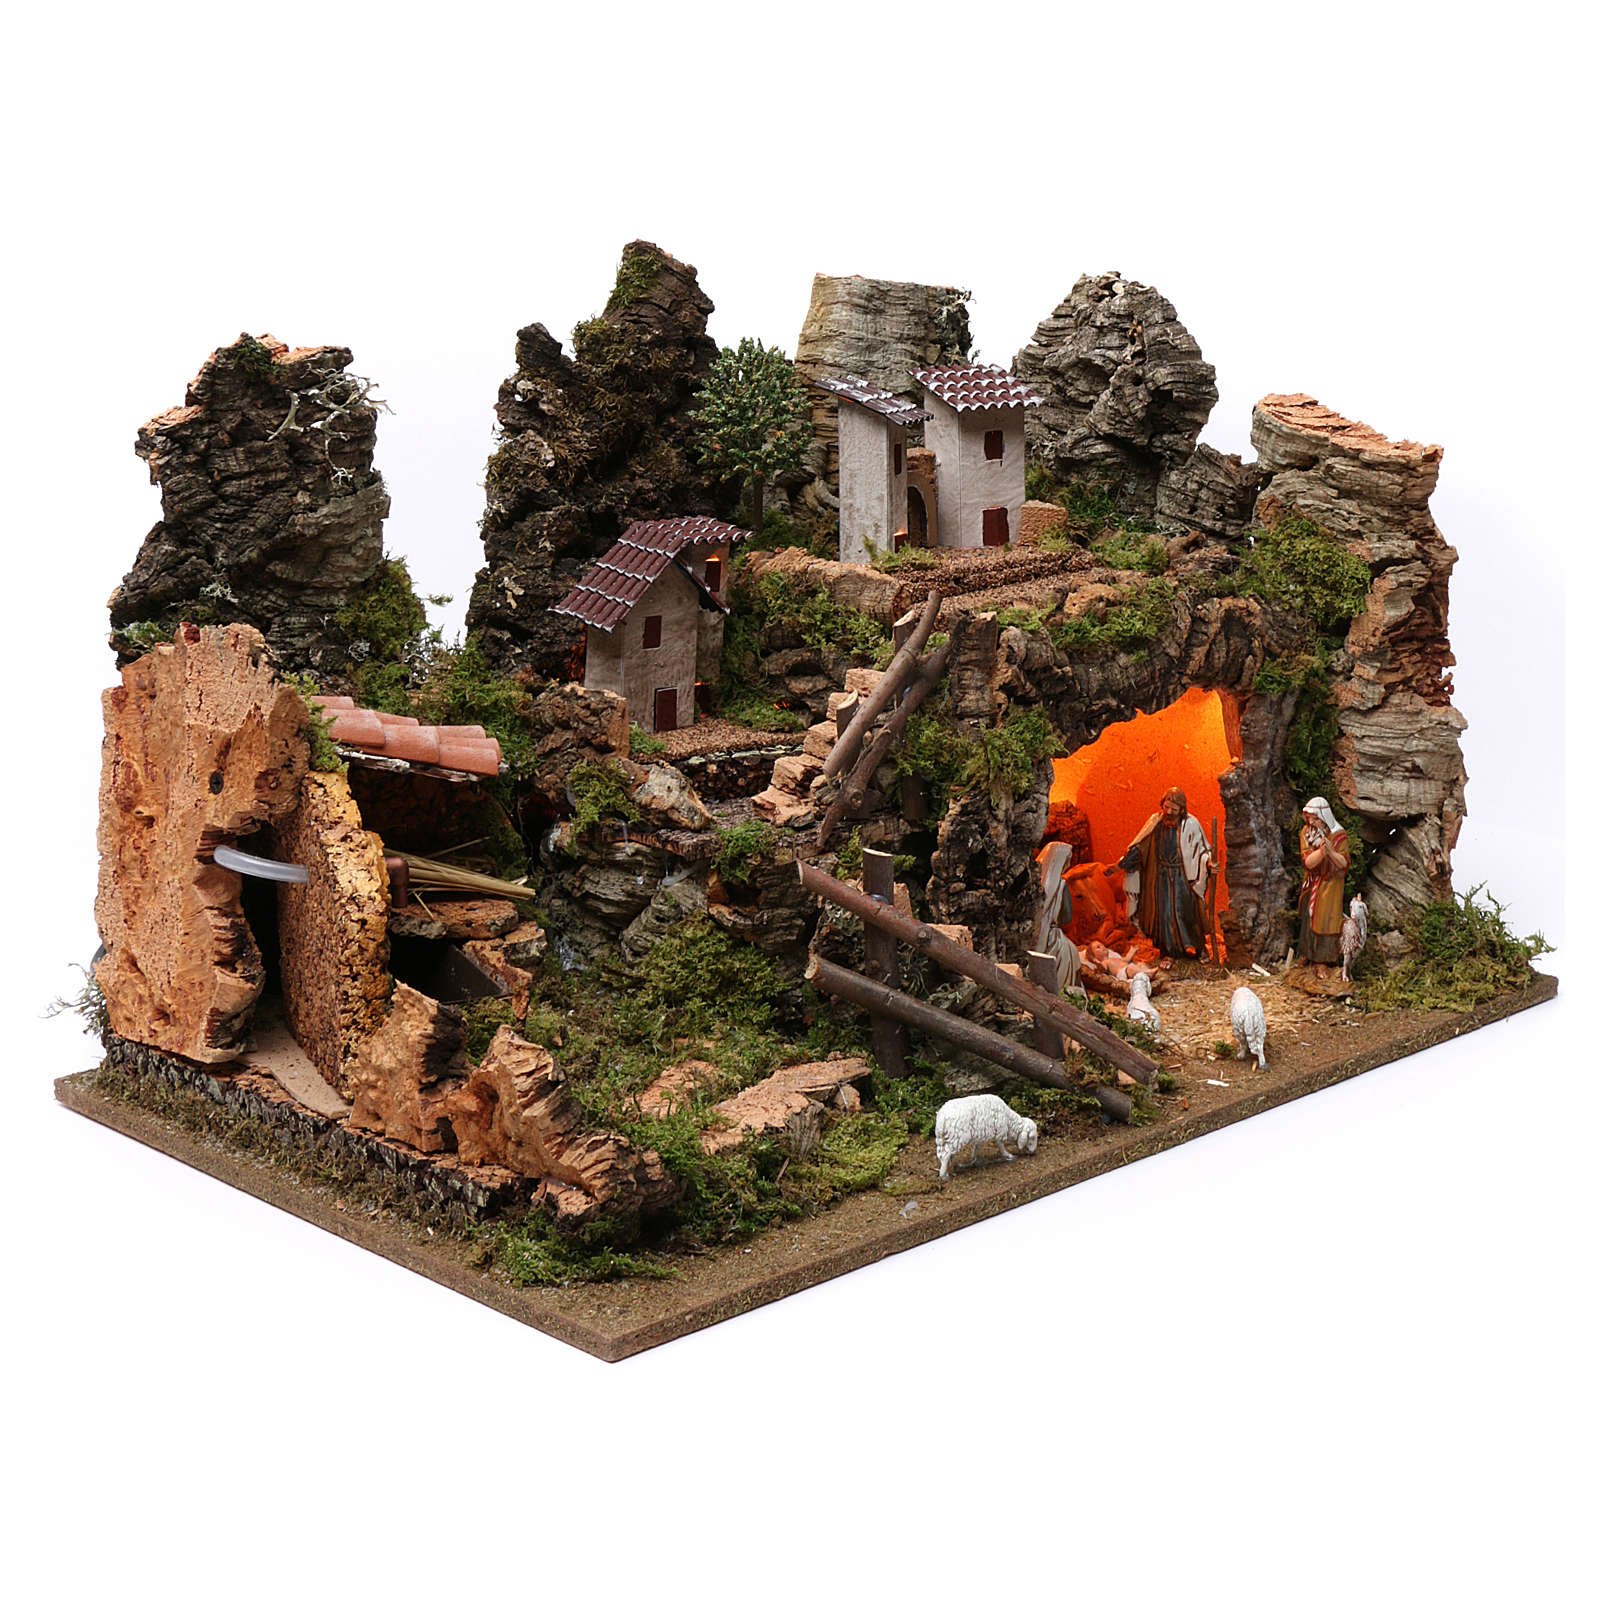 Illuminated Nativity setting with fountain and sheep 35X60X40 cm, figurines 8 cm 4